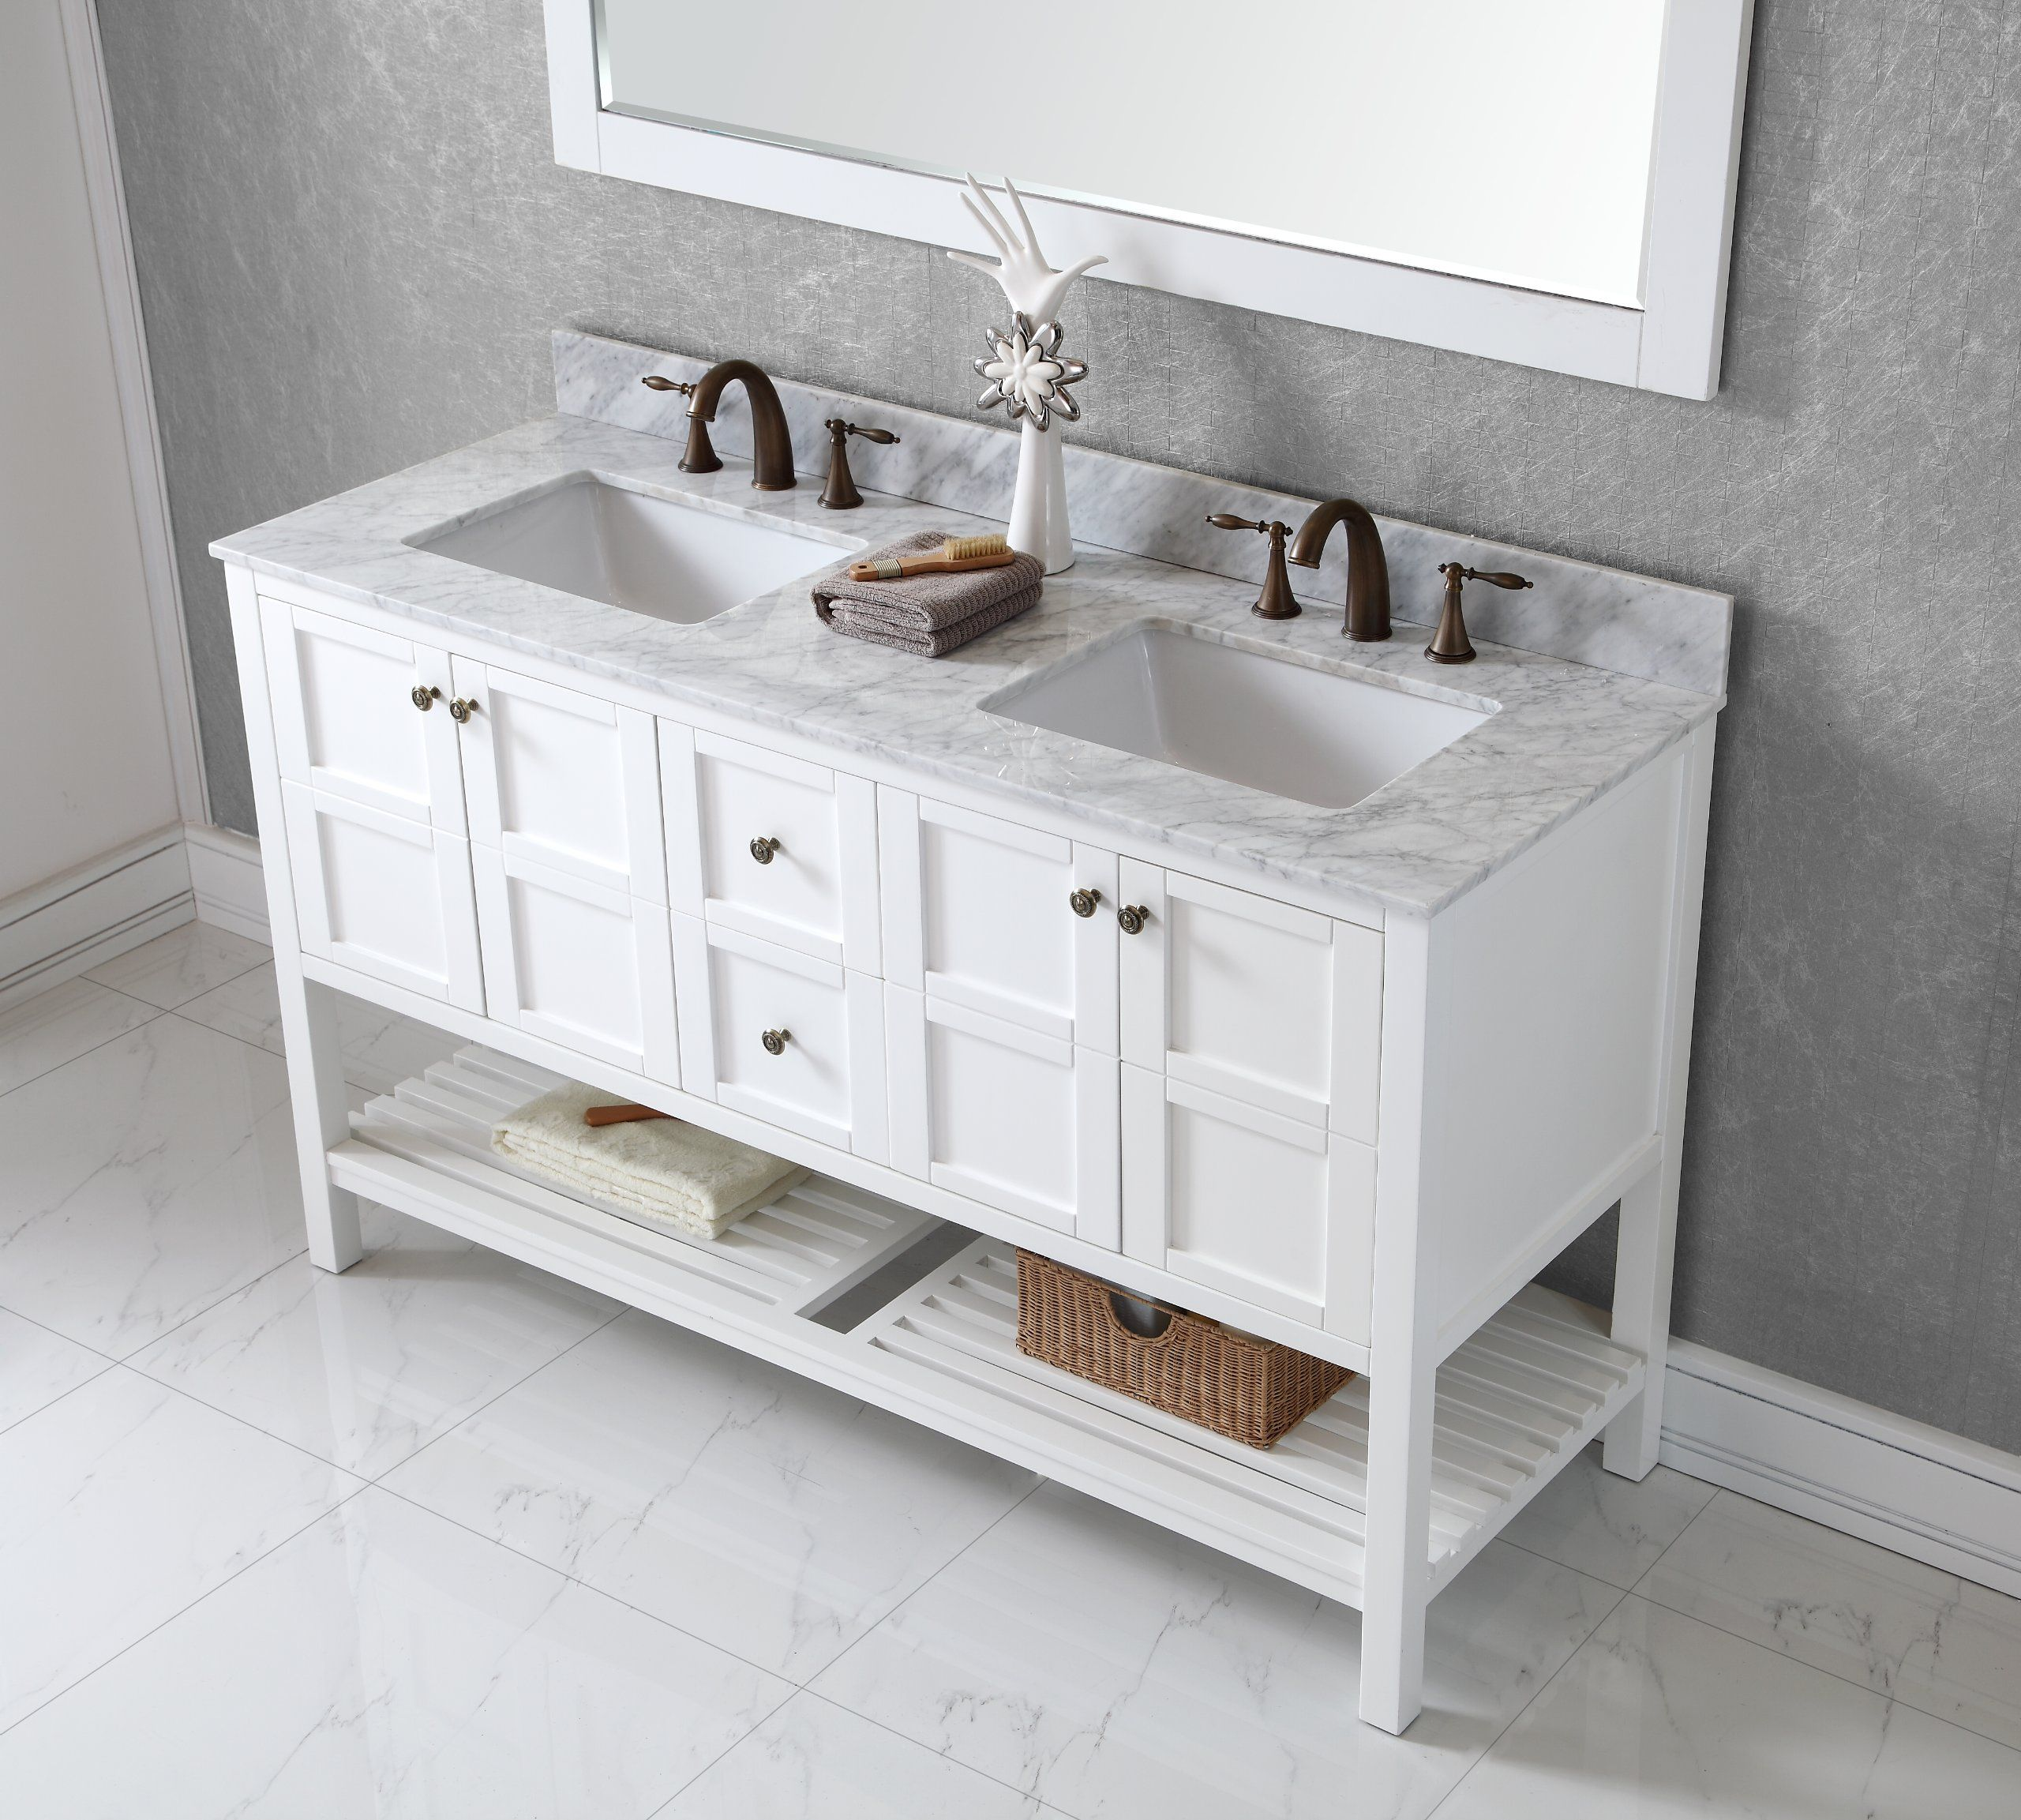 Virtu Usa Ed 30060 Wmsq Awh Winterfell 60 Inch Double Bathroom Vanity Set White Prime Shipping And 1410